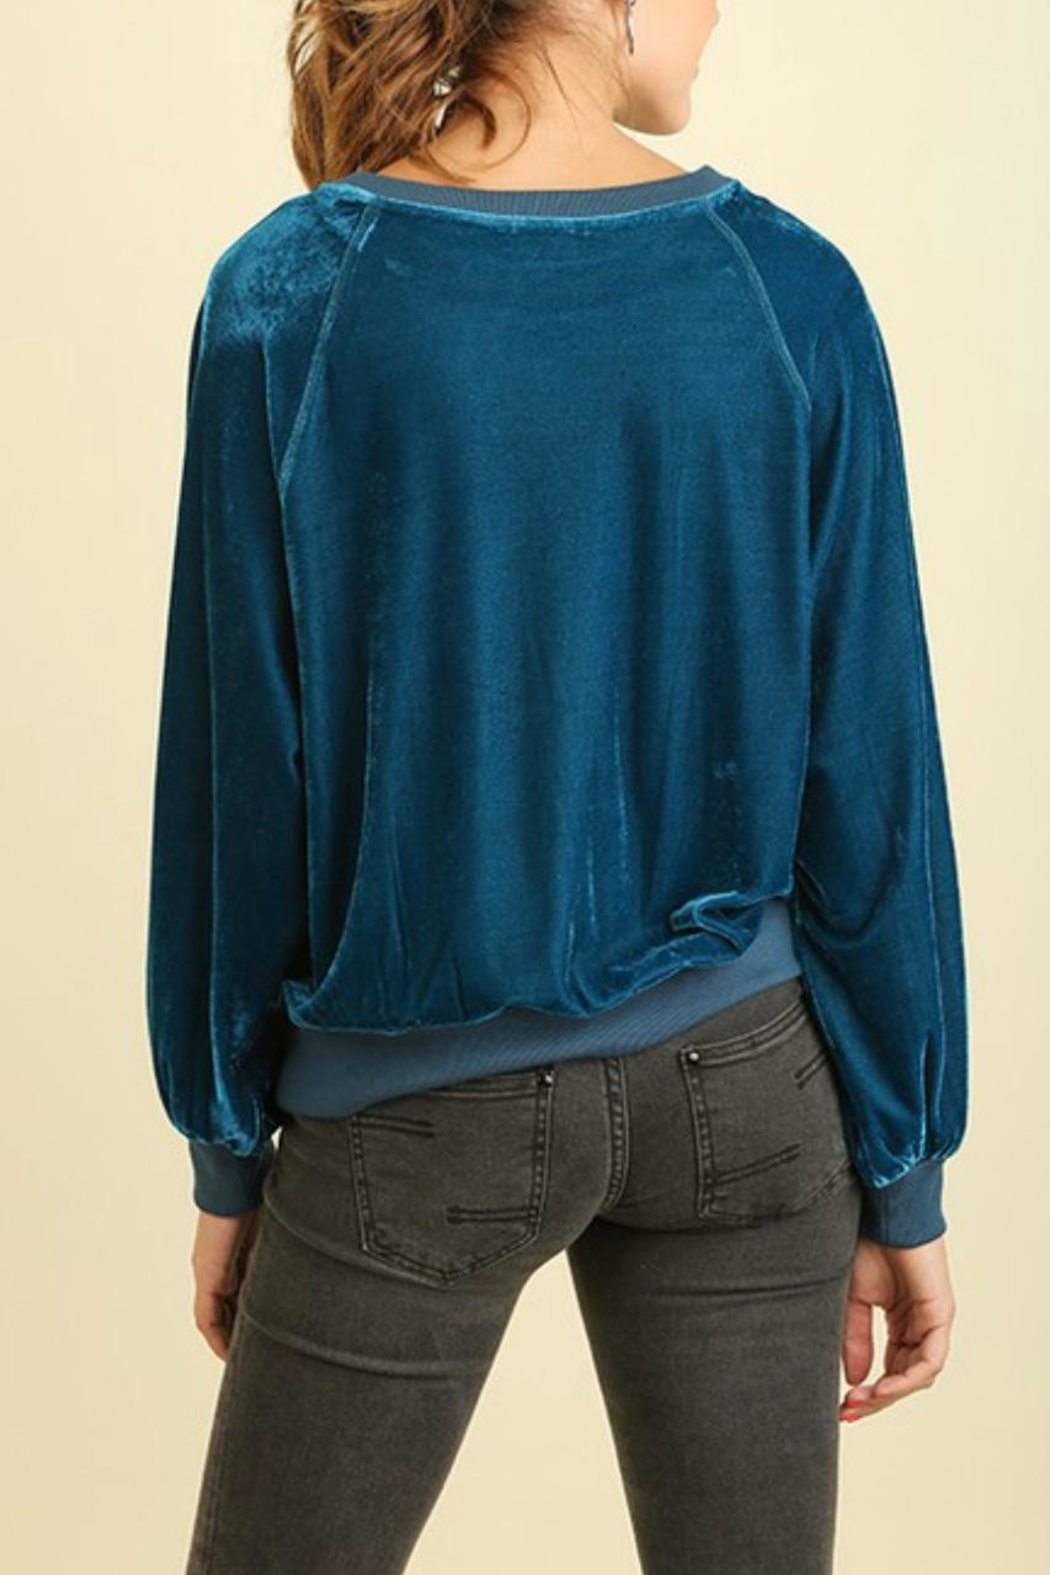 Umgee USA Teal Velvet Sweatshirt - Back Cropped Image